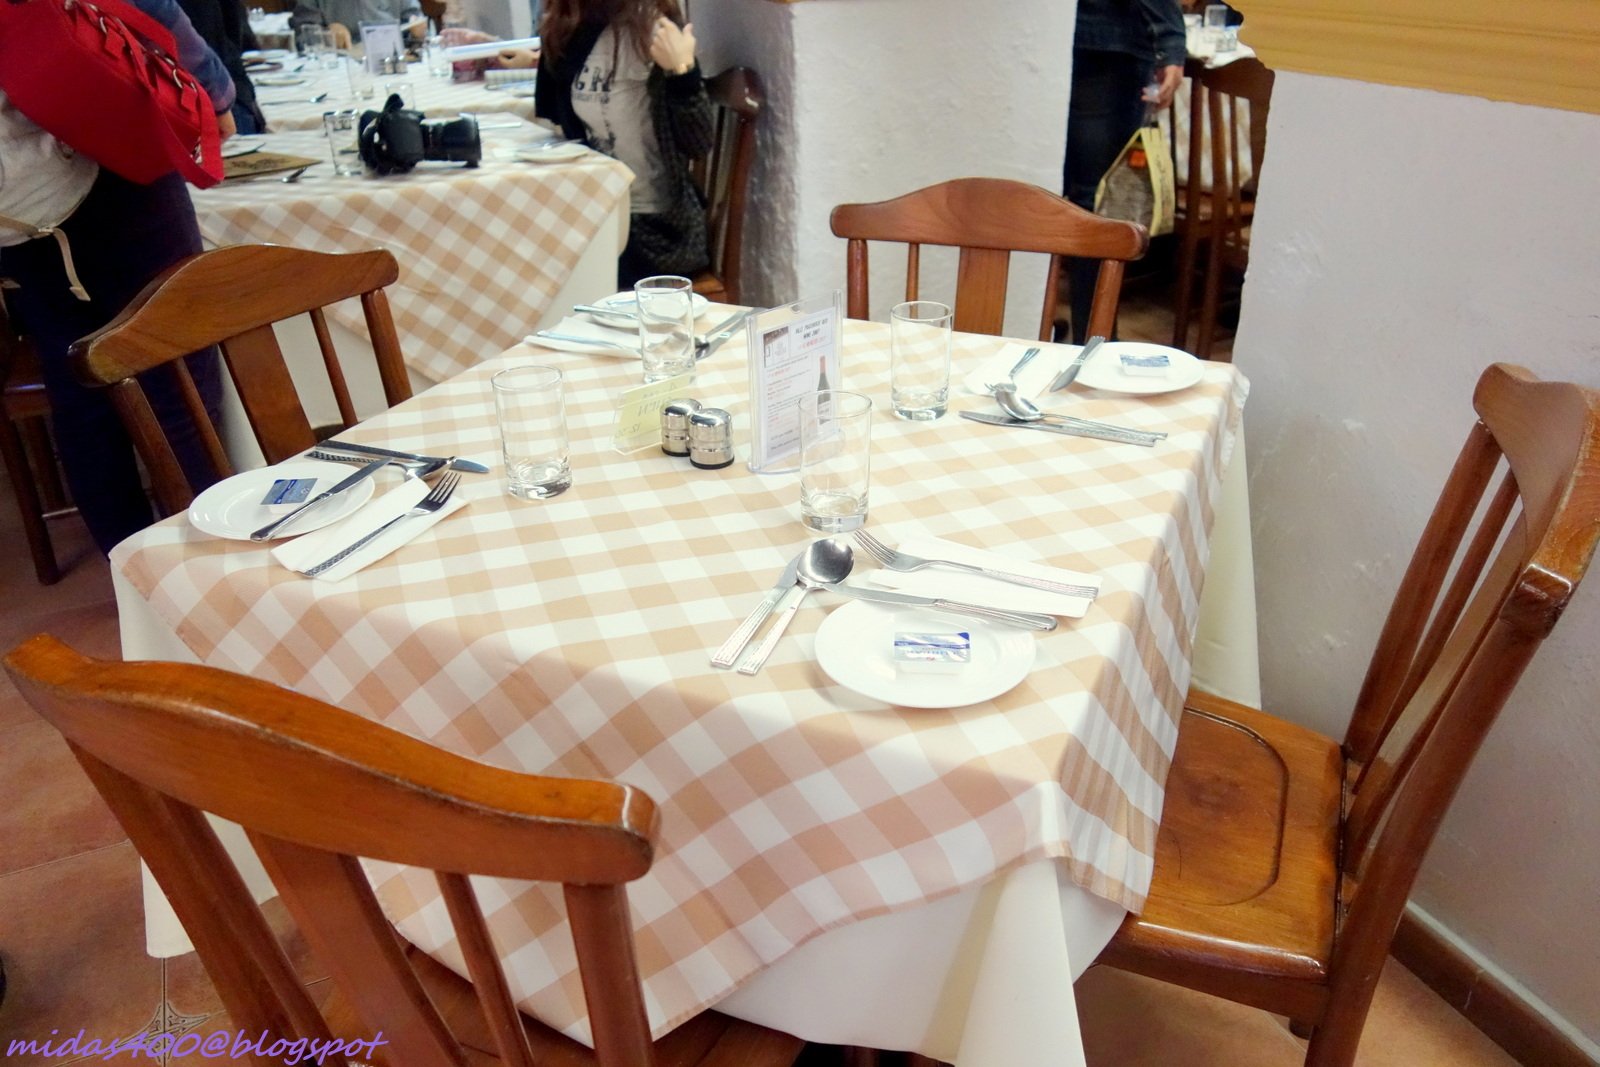 Simple restaurant table setting - We Got A Tiny Table At The Corner